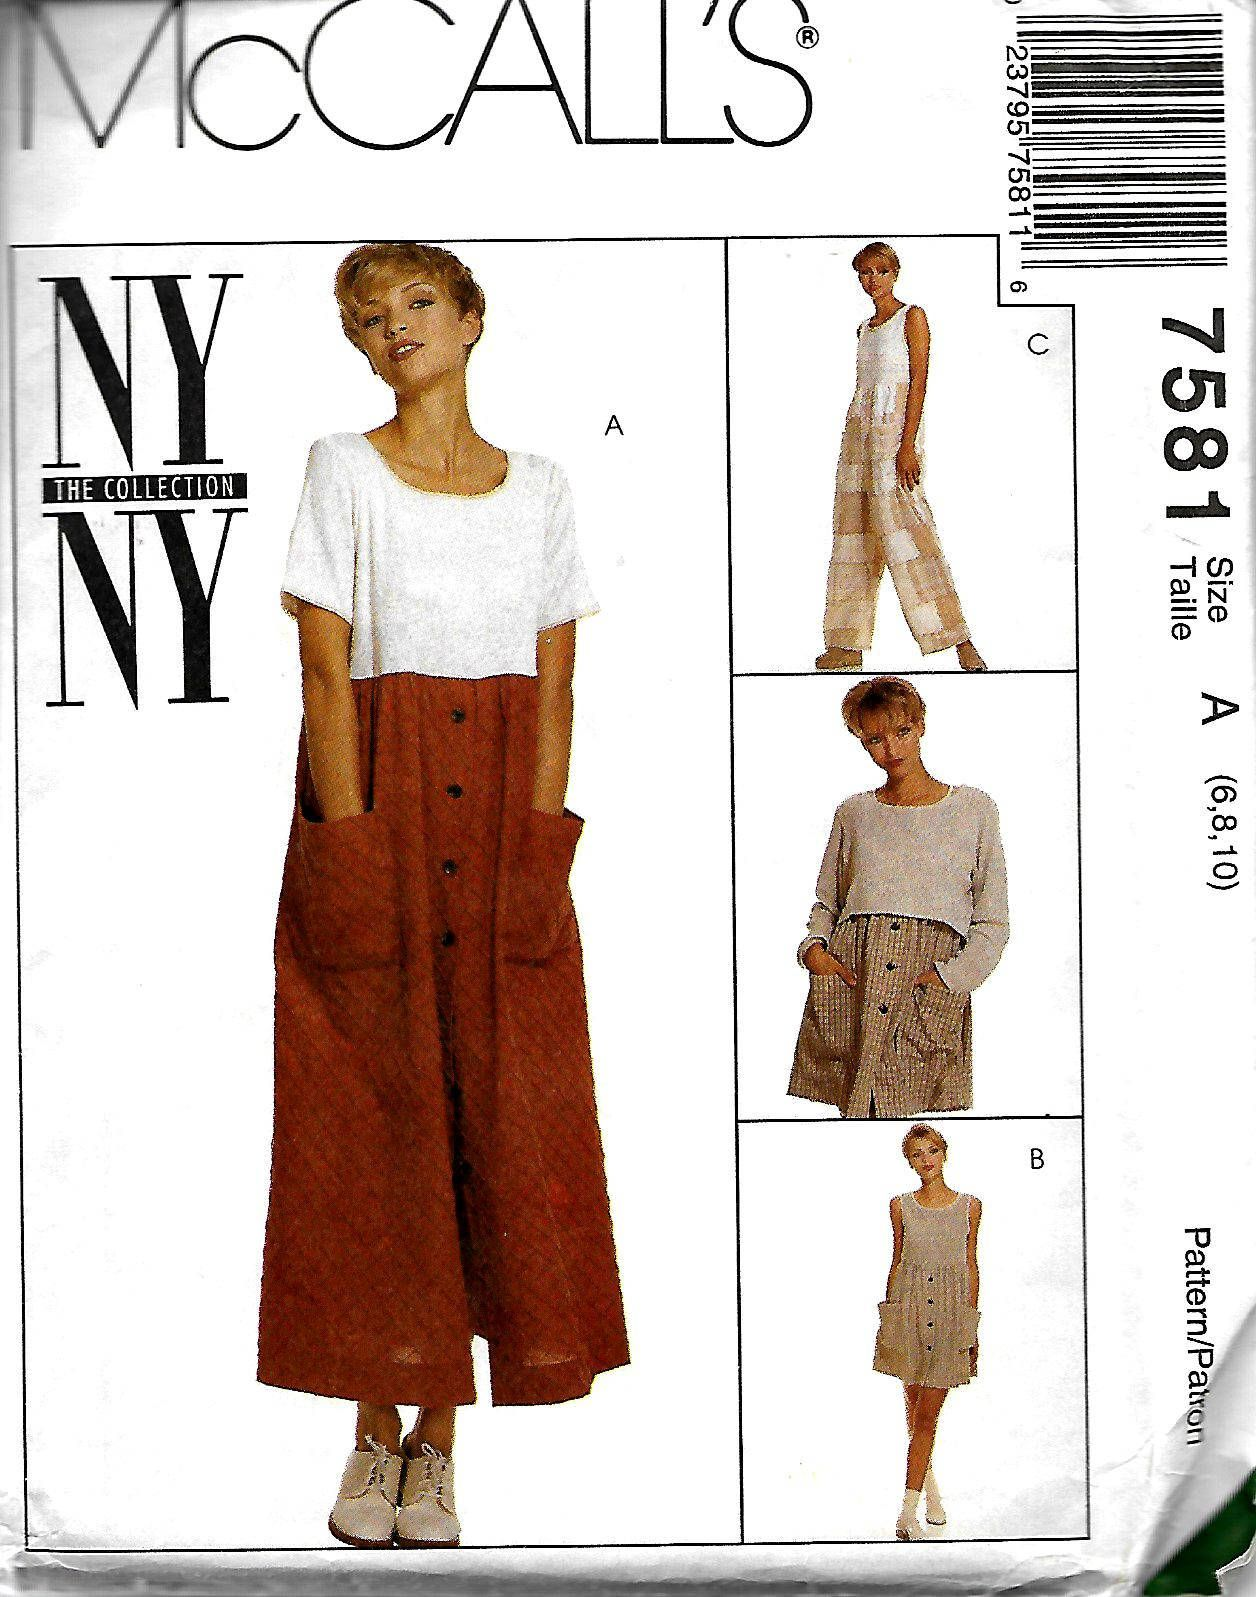 36e0ec04a McCall's 7581 Misses Raised Waist Dress In Two Lengths, Jumpsuit And Top  Pattern, NY Collection, Size 6-10, UNCUT by DawnsDesignBoutique on Etsy